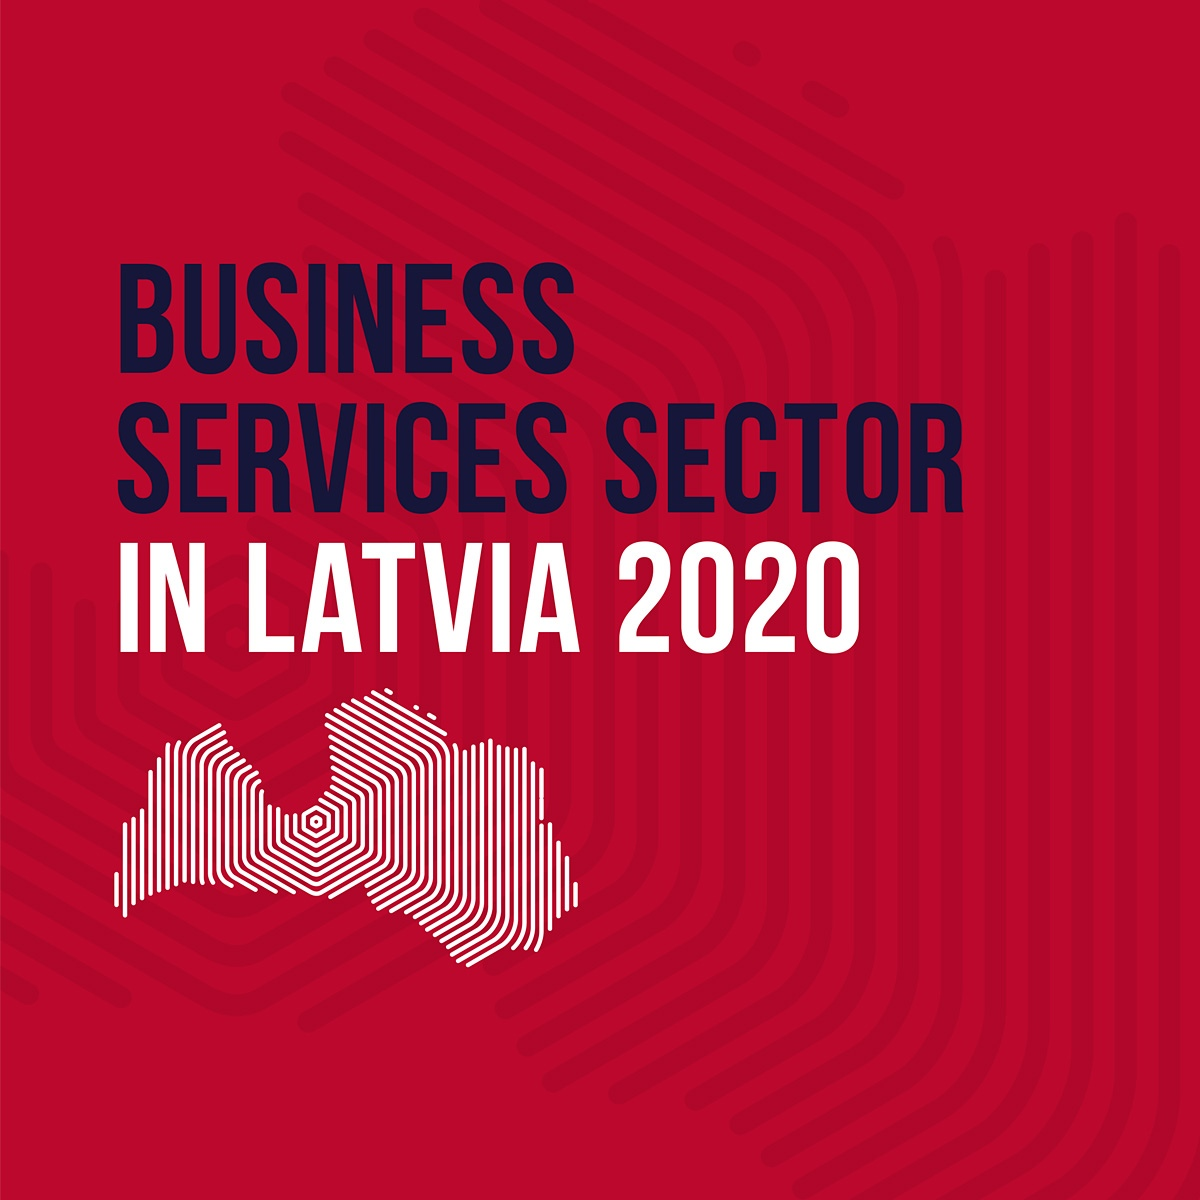 Business Services Sector in Latvia 2020